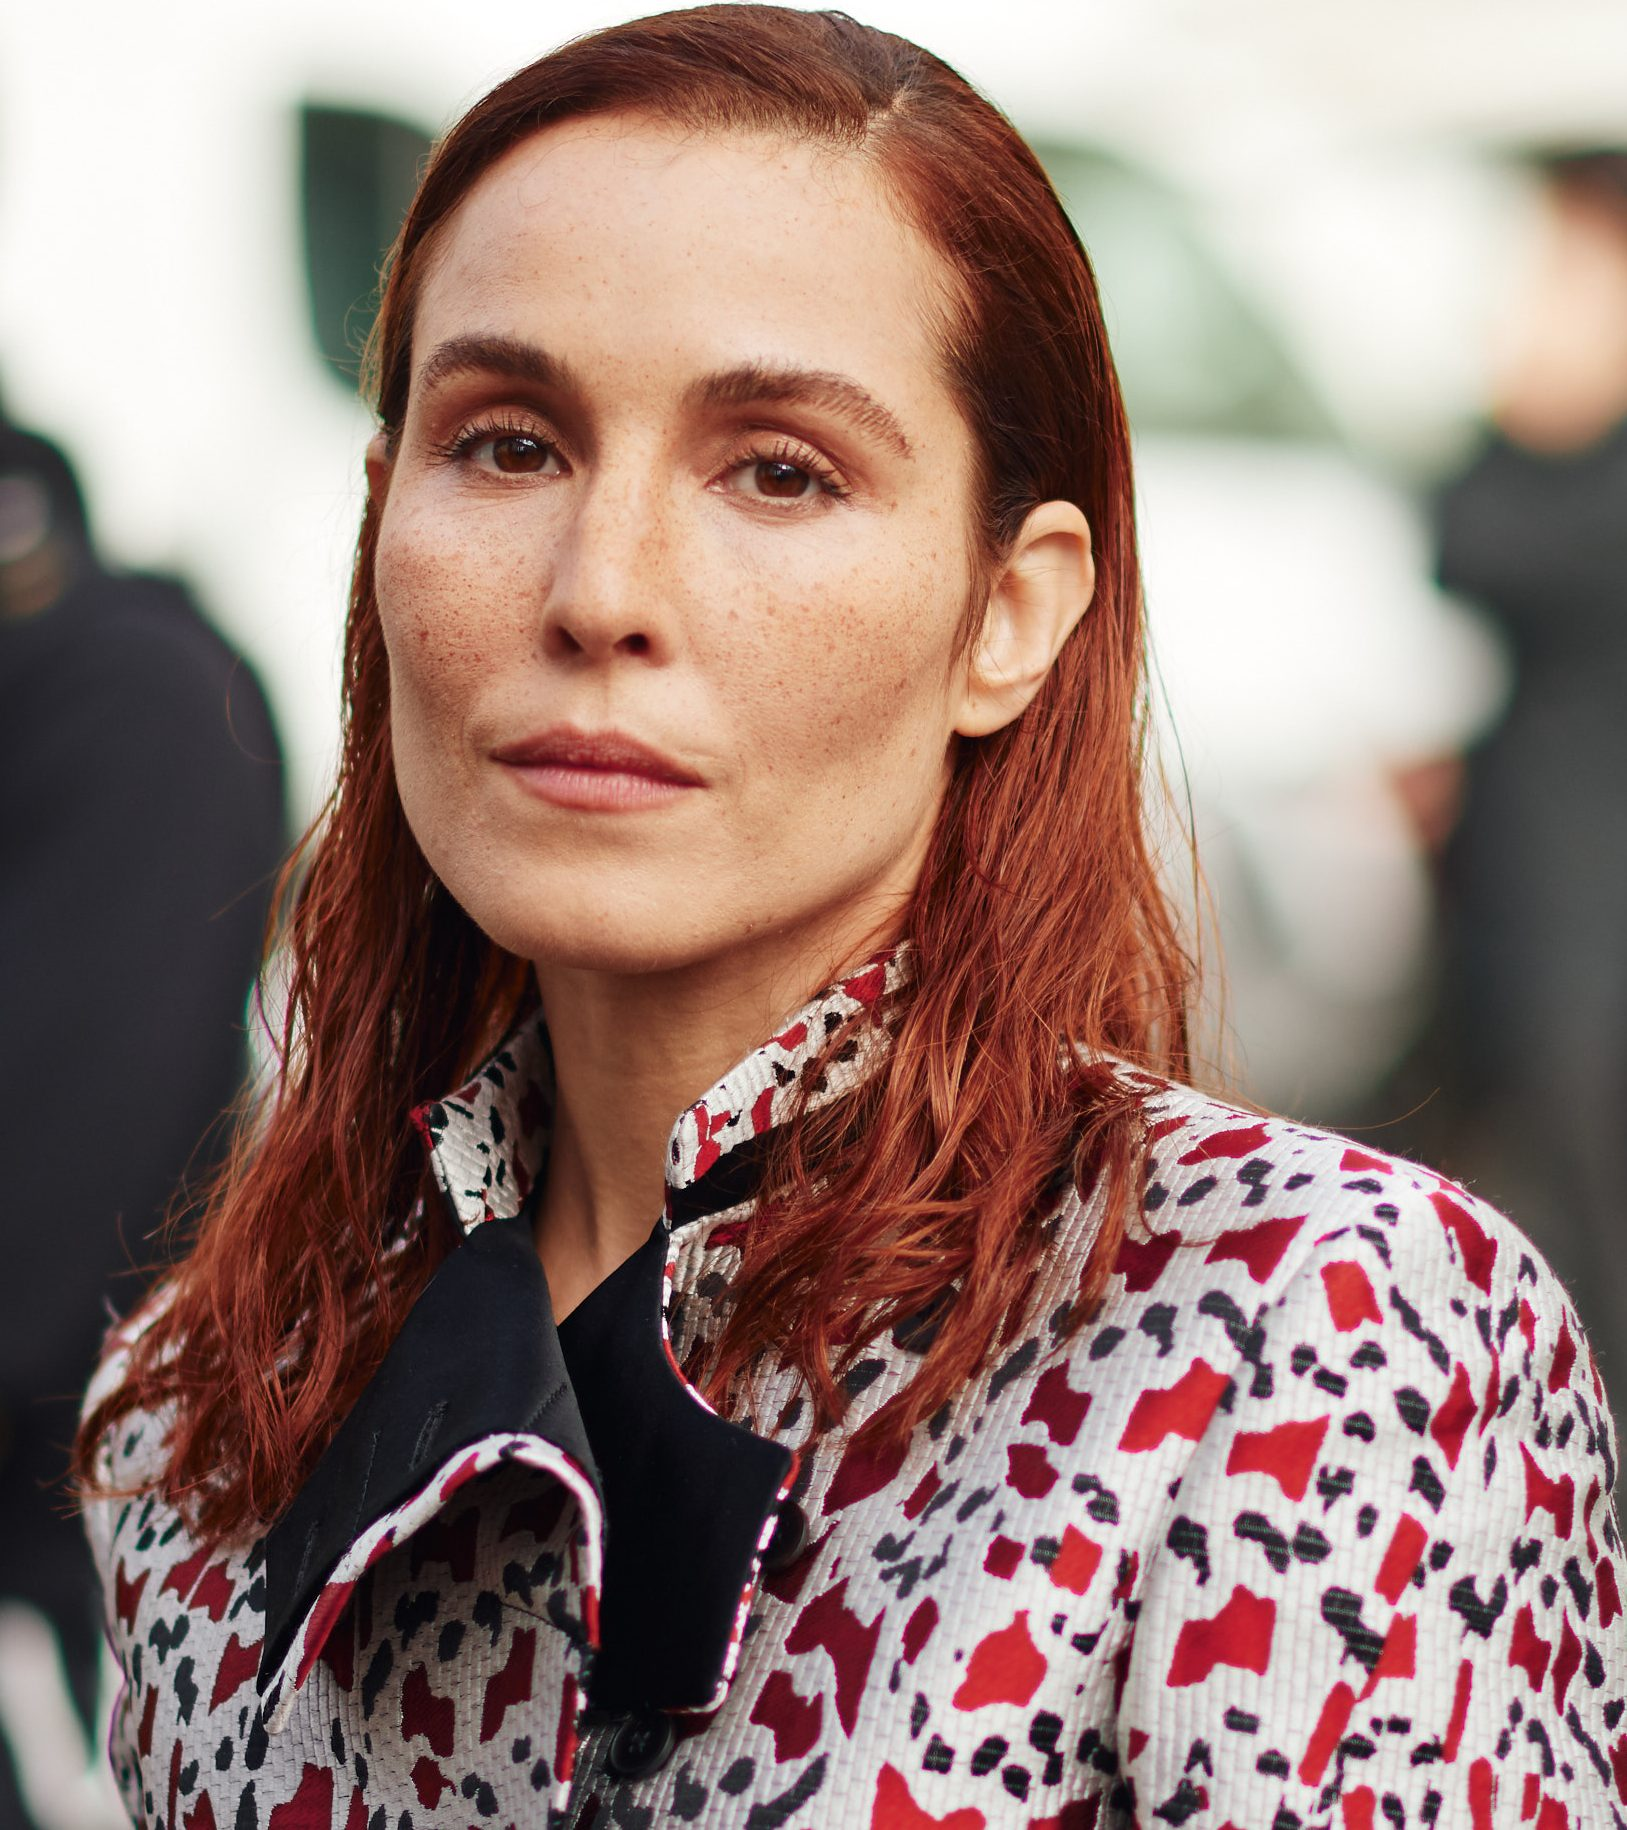 Noomi Rapace Paris Fashion Week Spring Summer 2020 e1580128603451 20 Actors Who Would Kill It As The Next James Bond